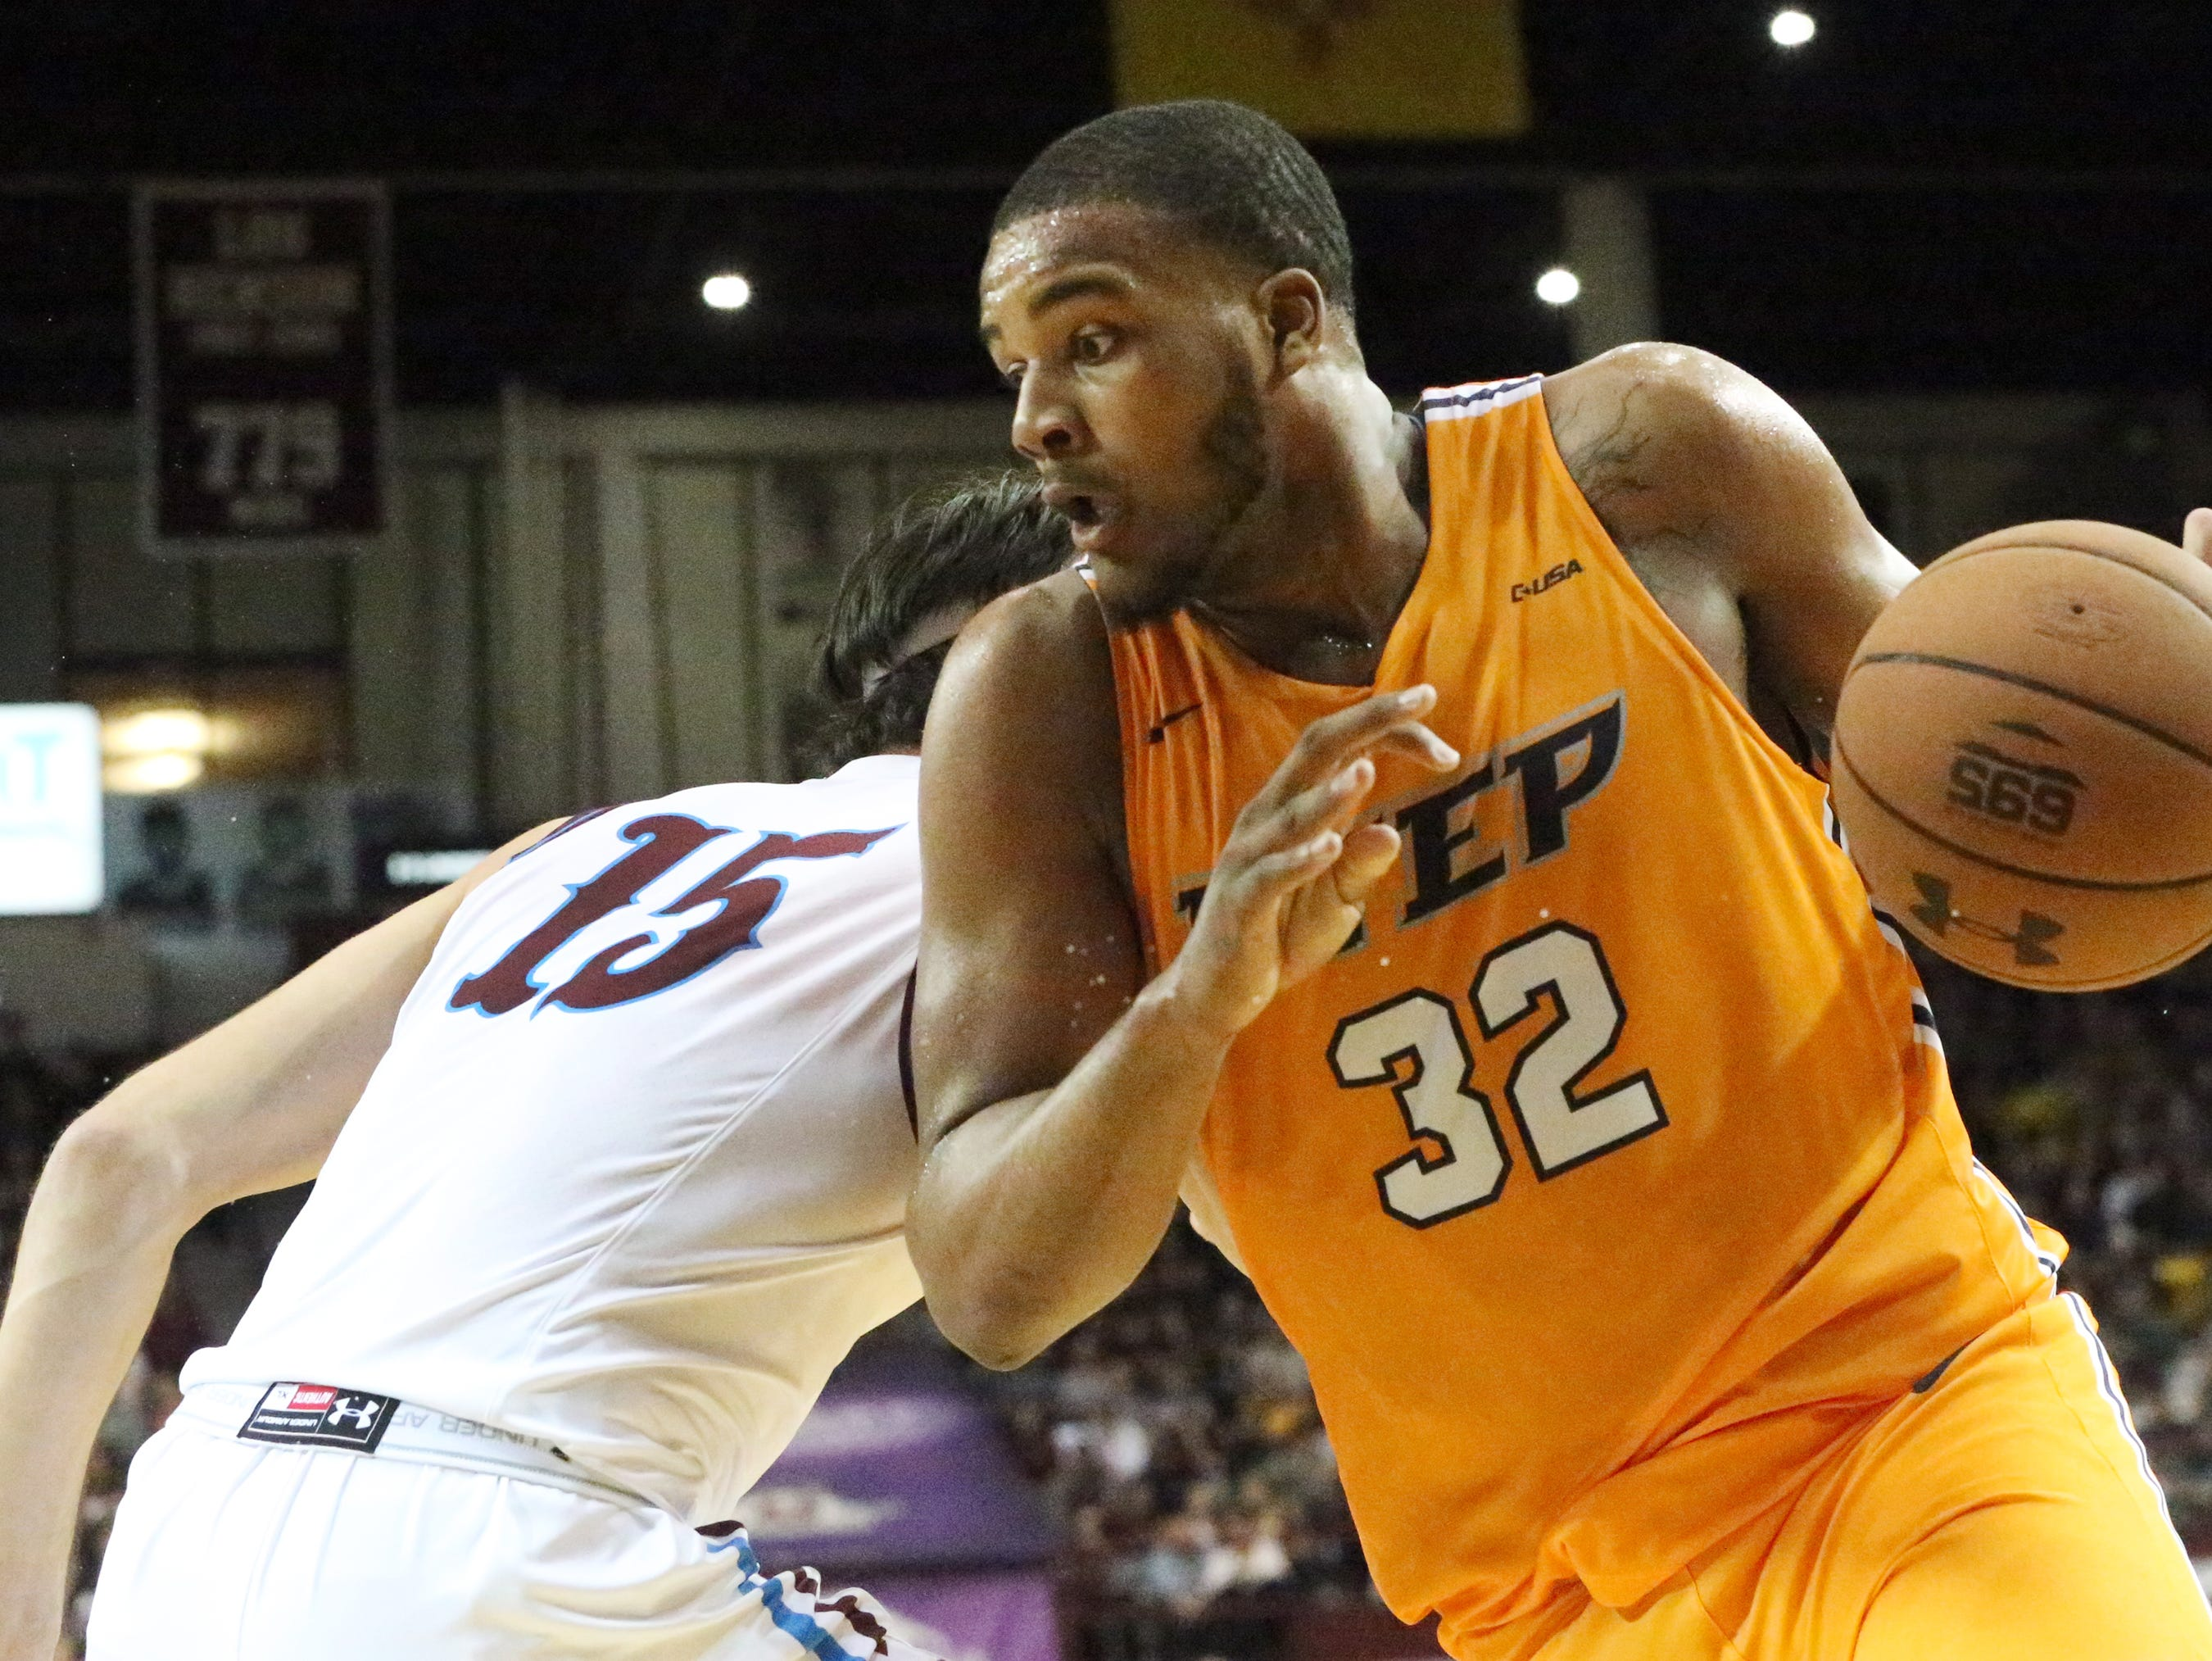 Efe Odigie, 32, of UTEP slips past Ivan Aurrecoechea 15, of NMSU Friday night in the Pan American Center.